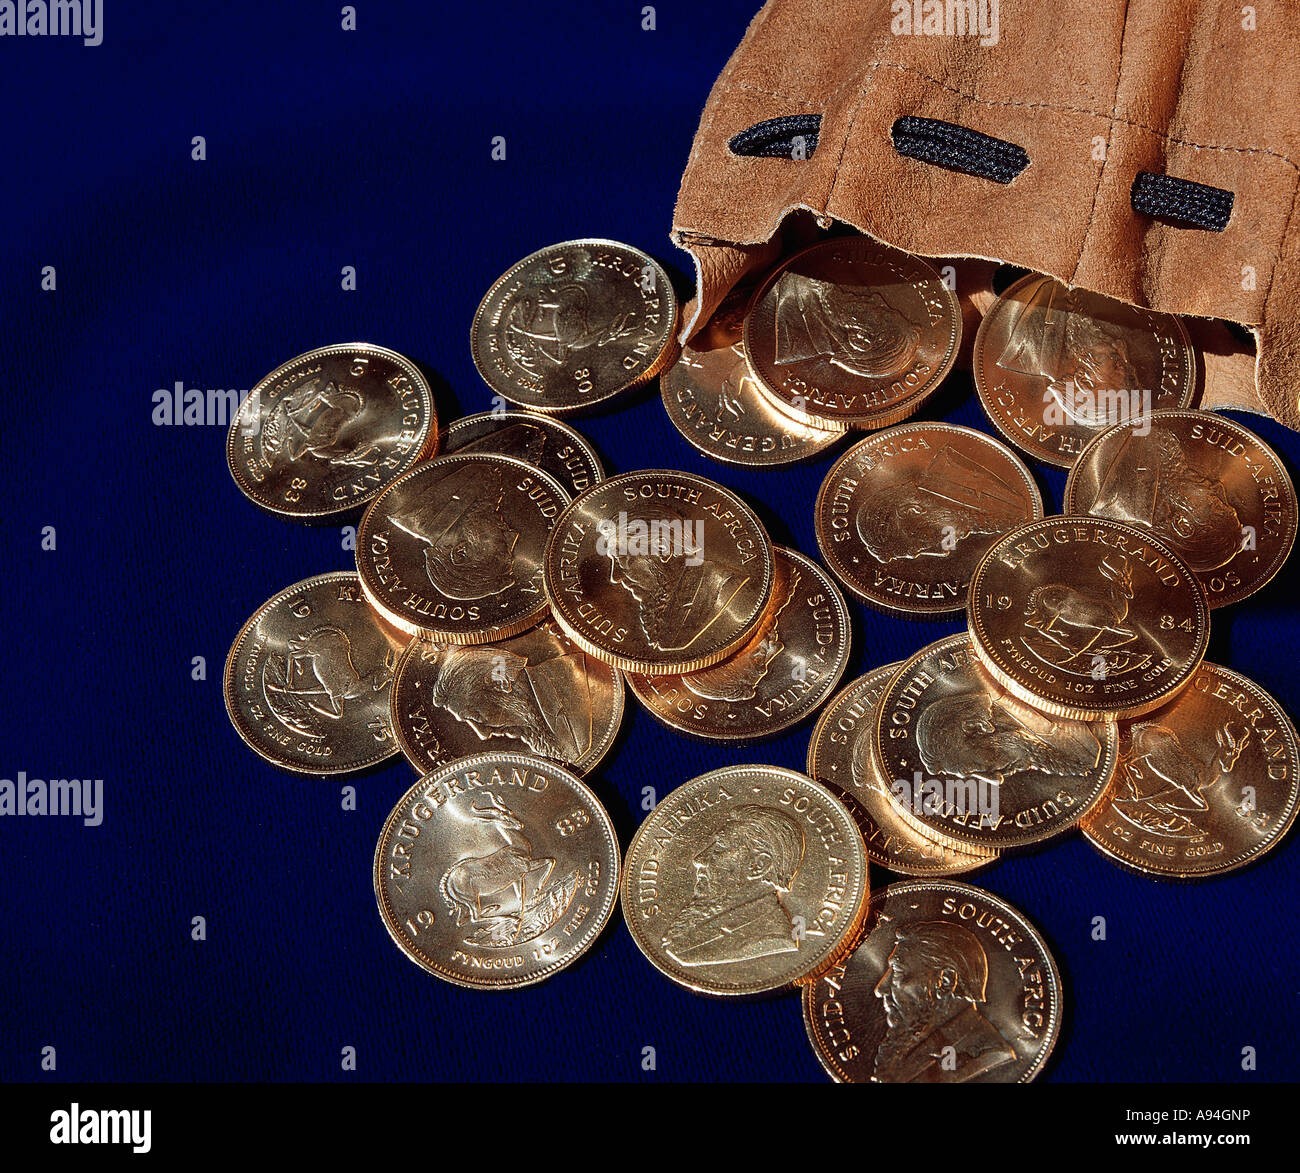 Kruger Rand Gold coins lie spilled from a leather pouch Johannesburg Gauteng South Africa - Stock Image